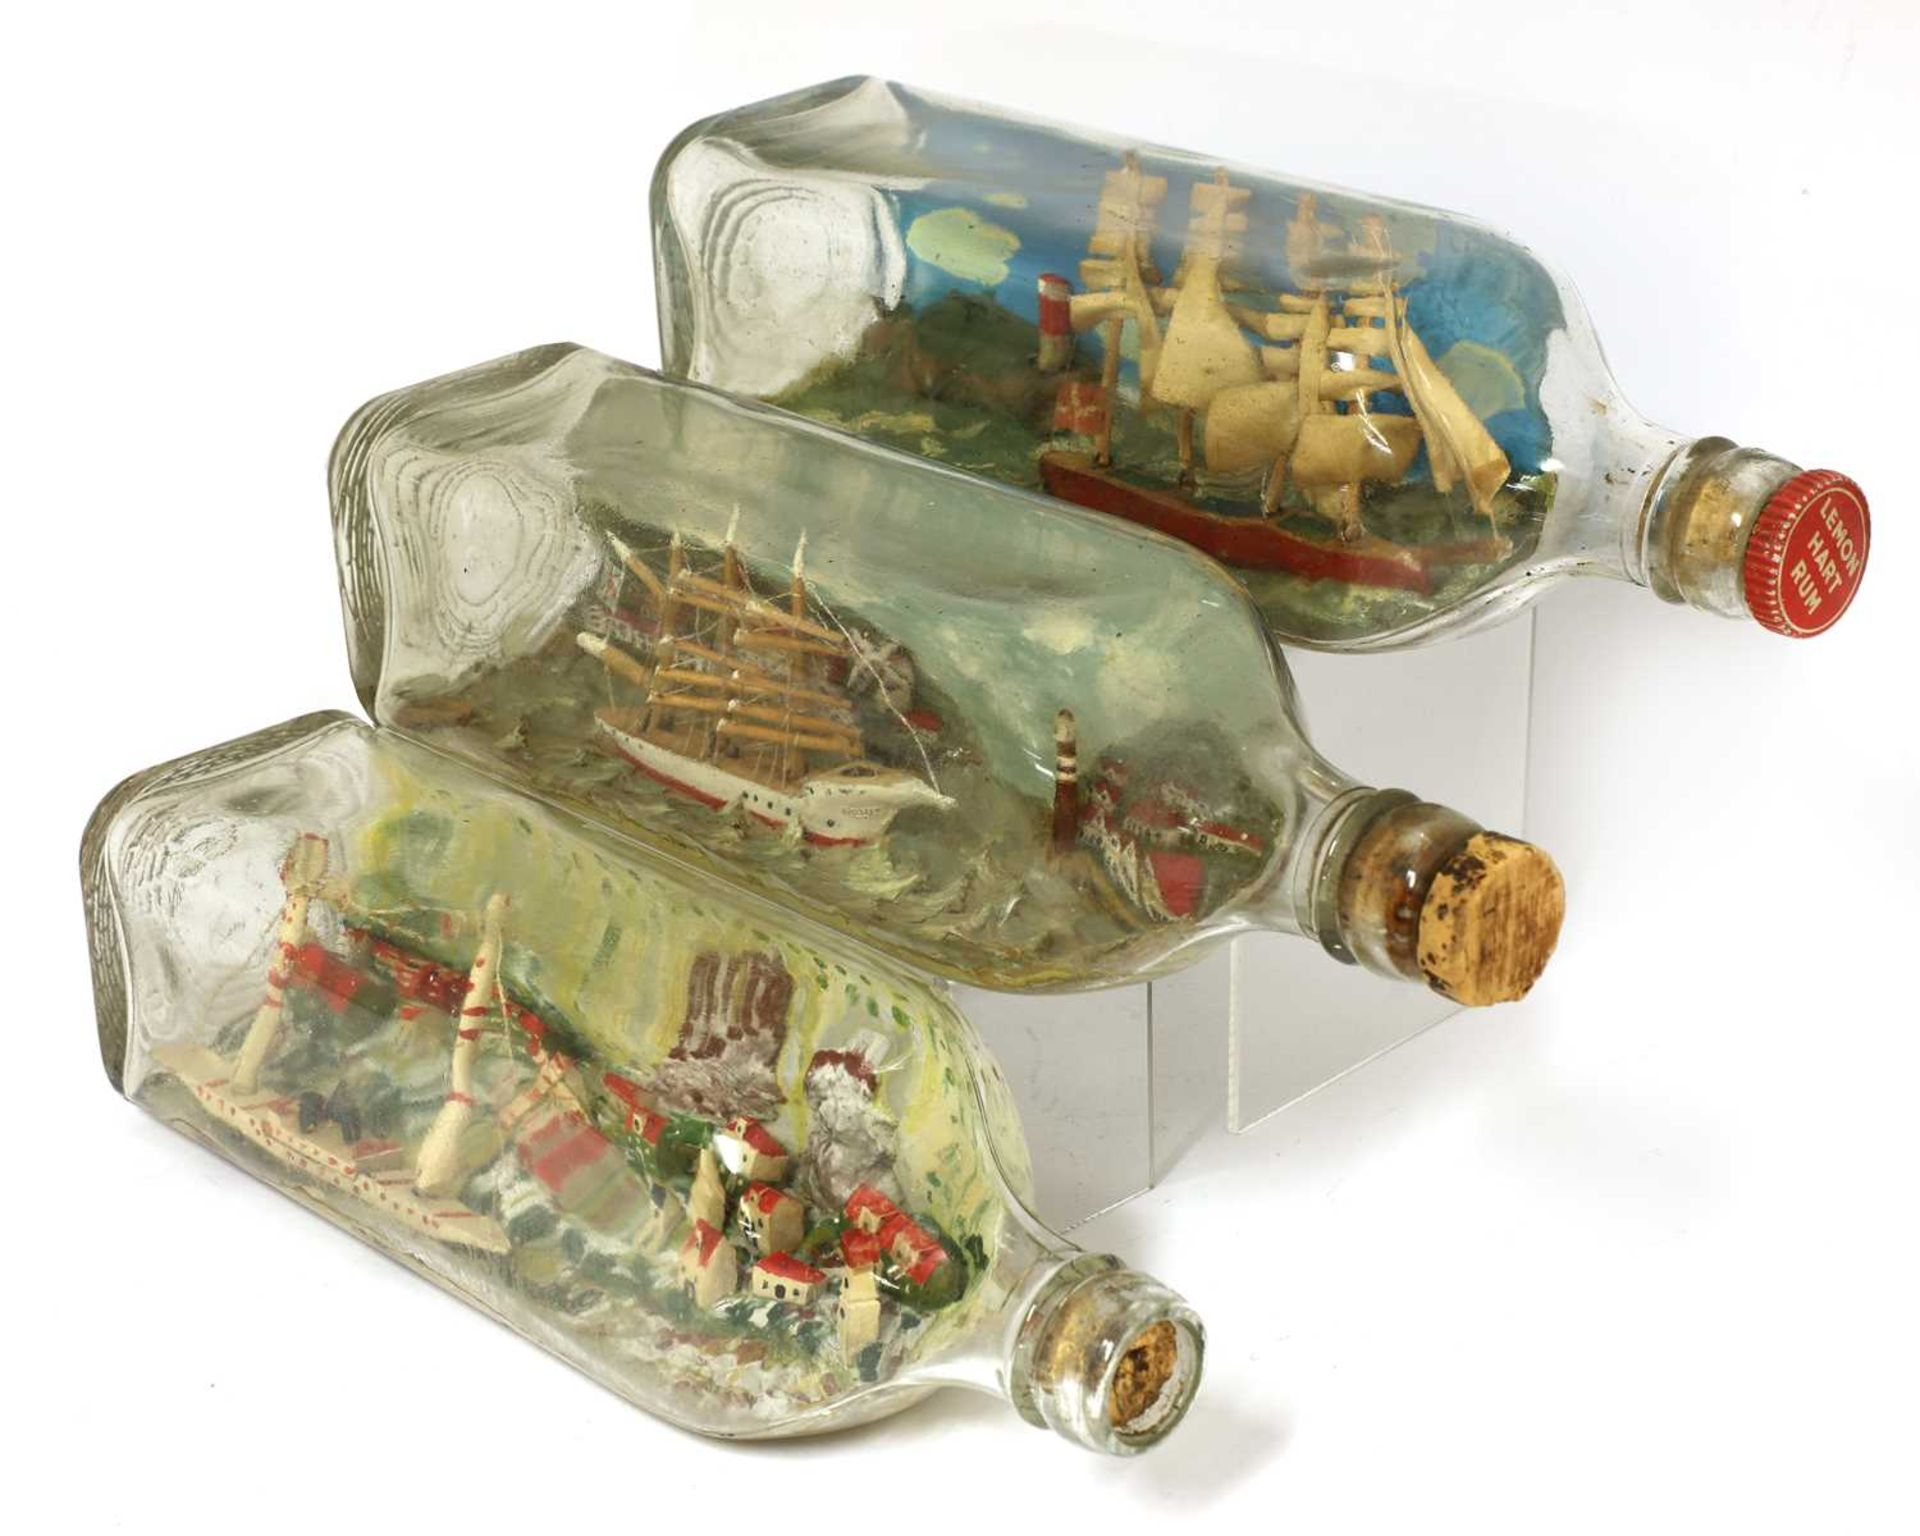 Four ships in bottles - Image 2 of 3